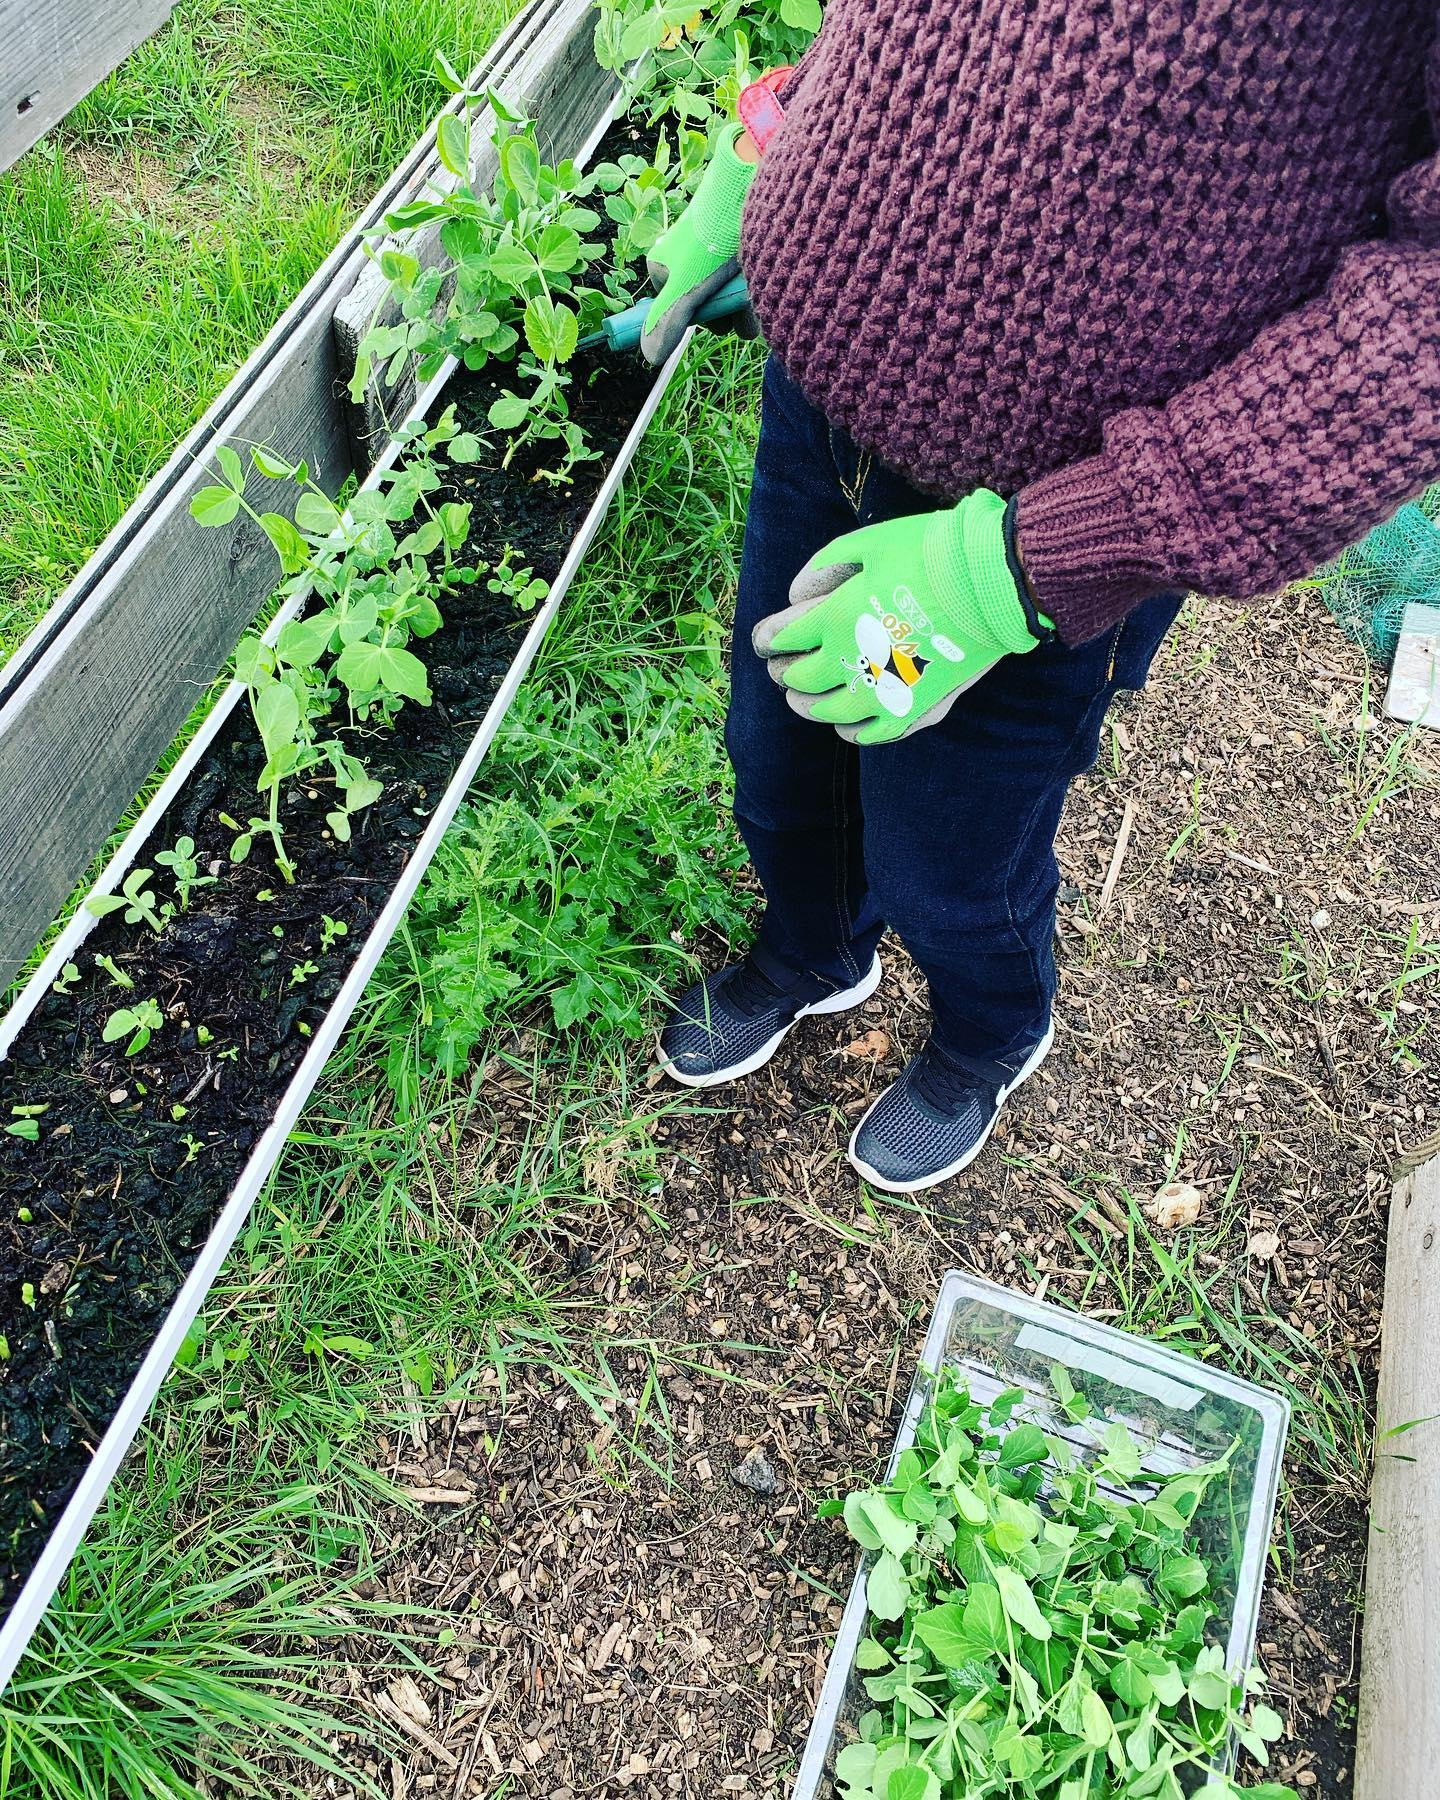 harvesting the Pea shoots